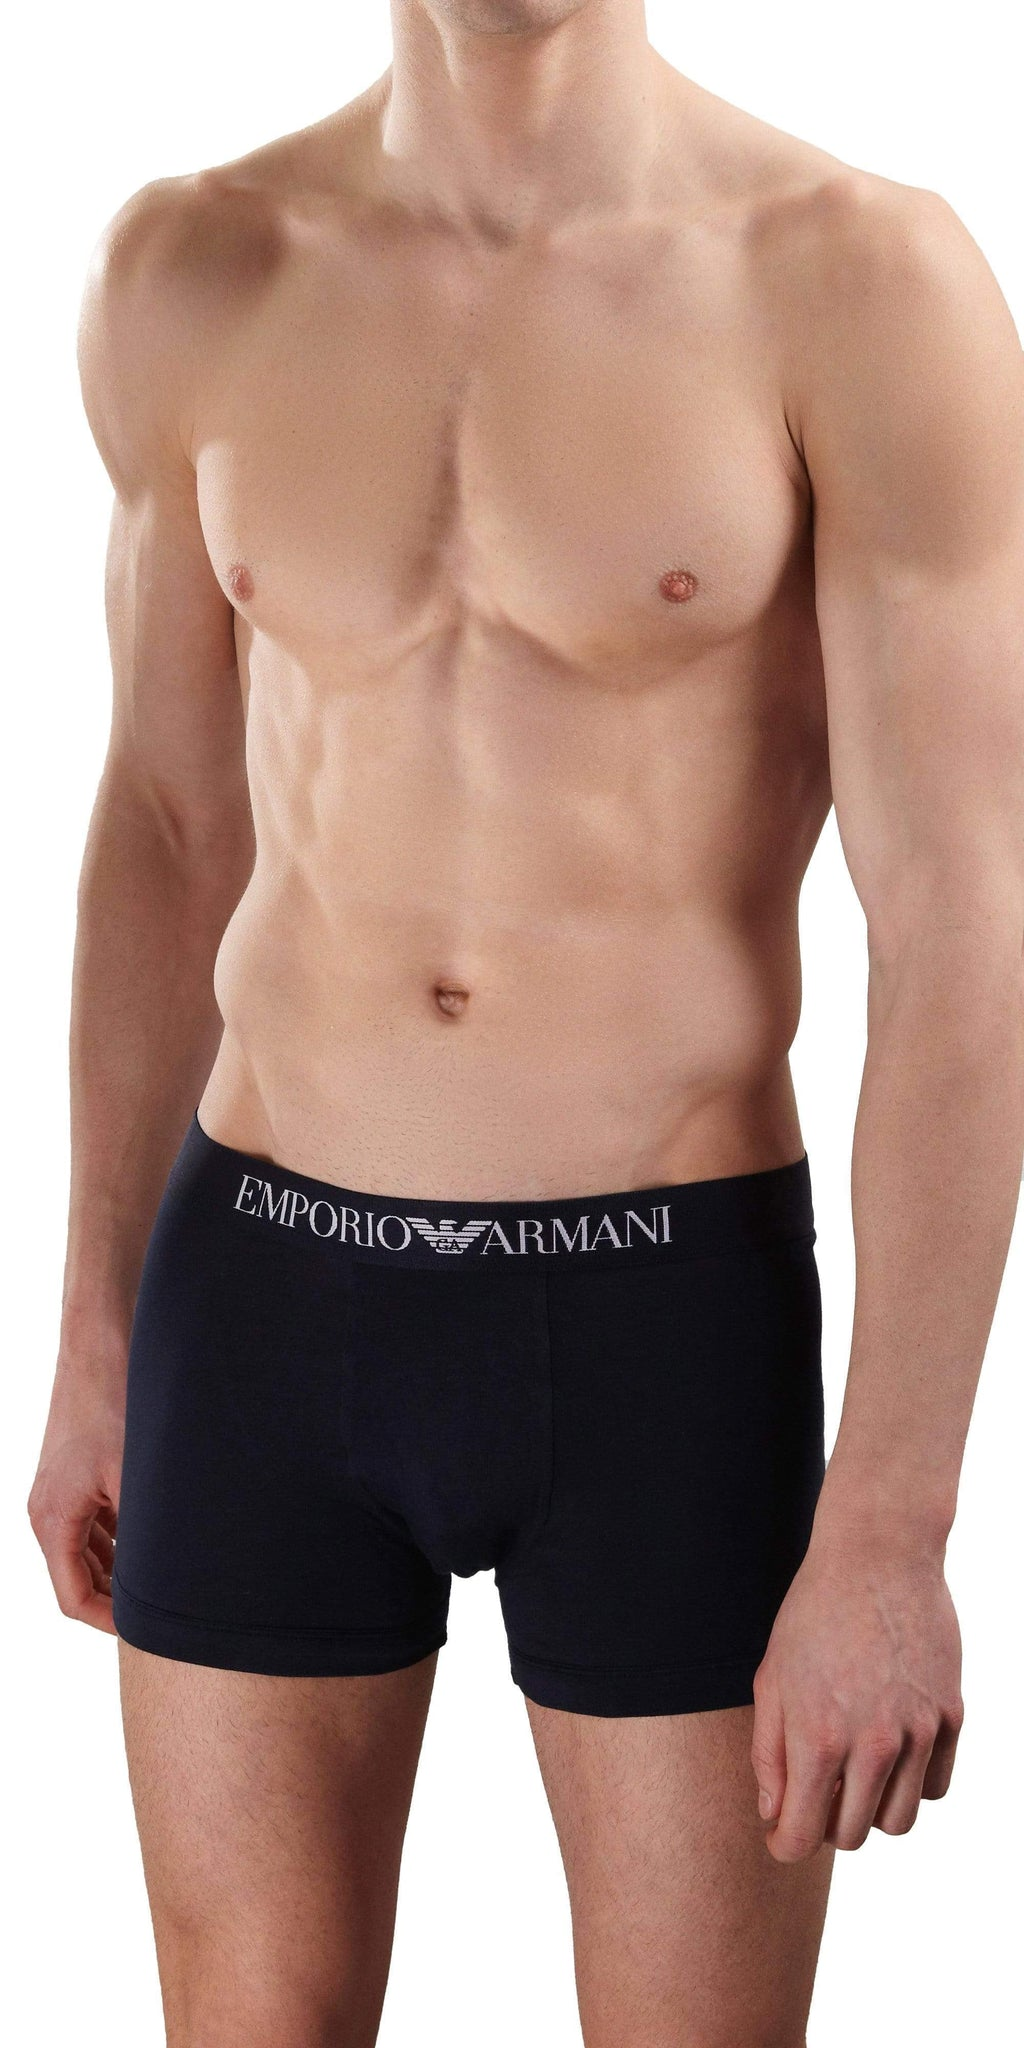 Emporio Armani Boxer Brief Navy - 110818cc718